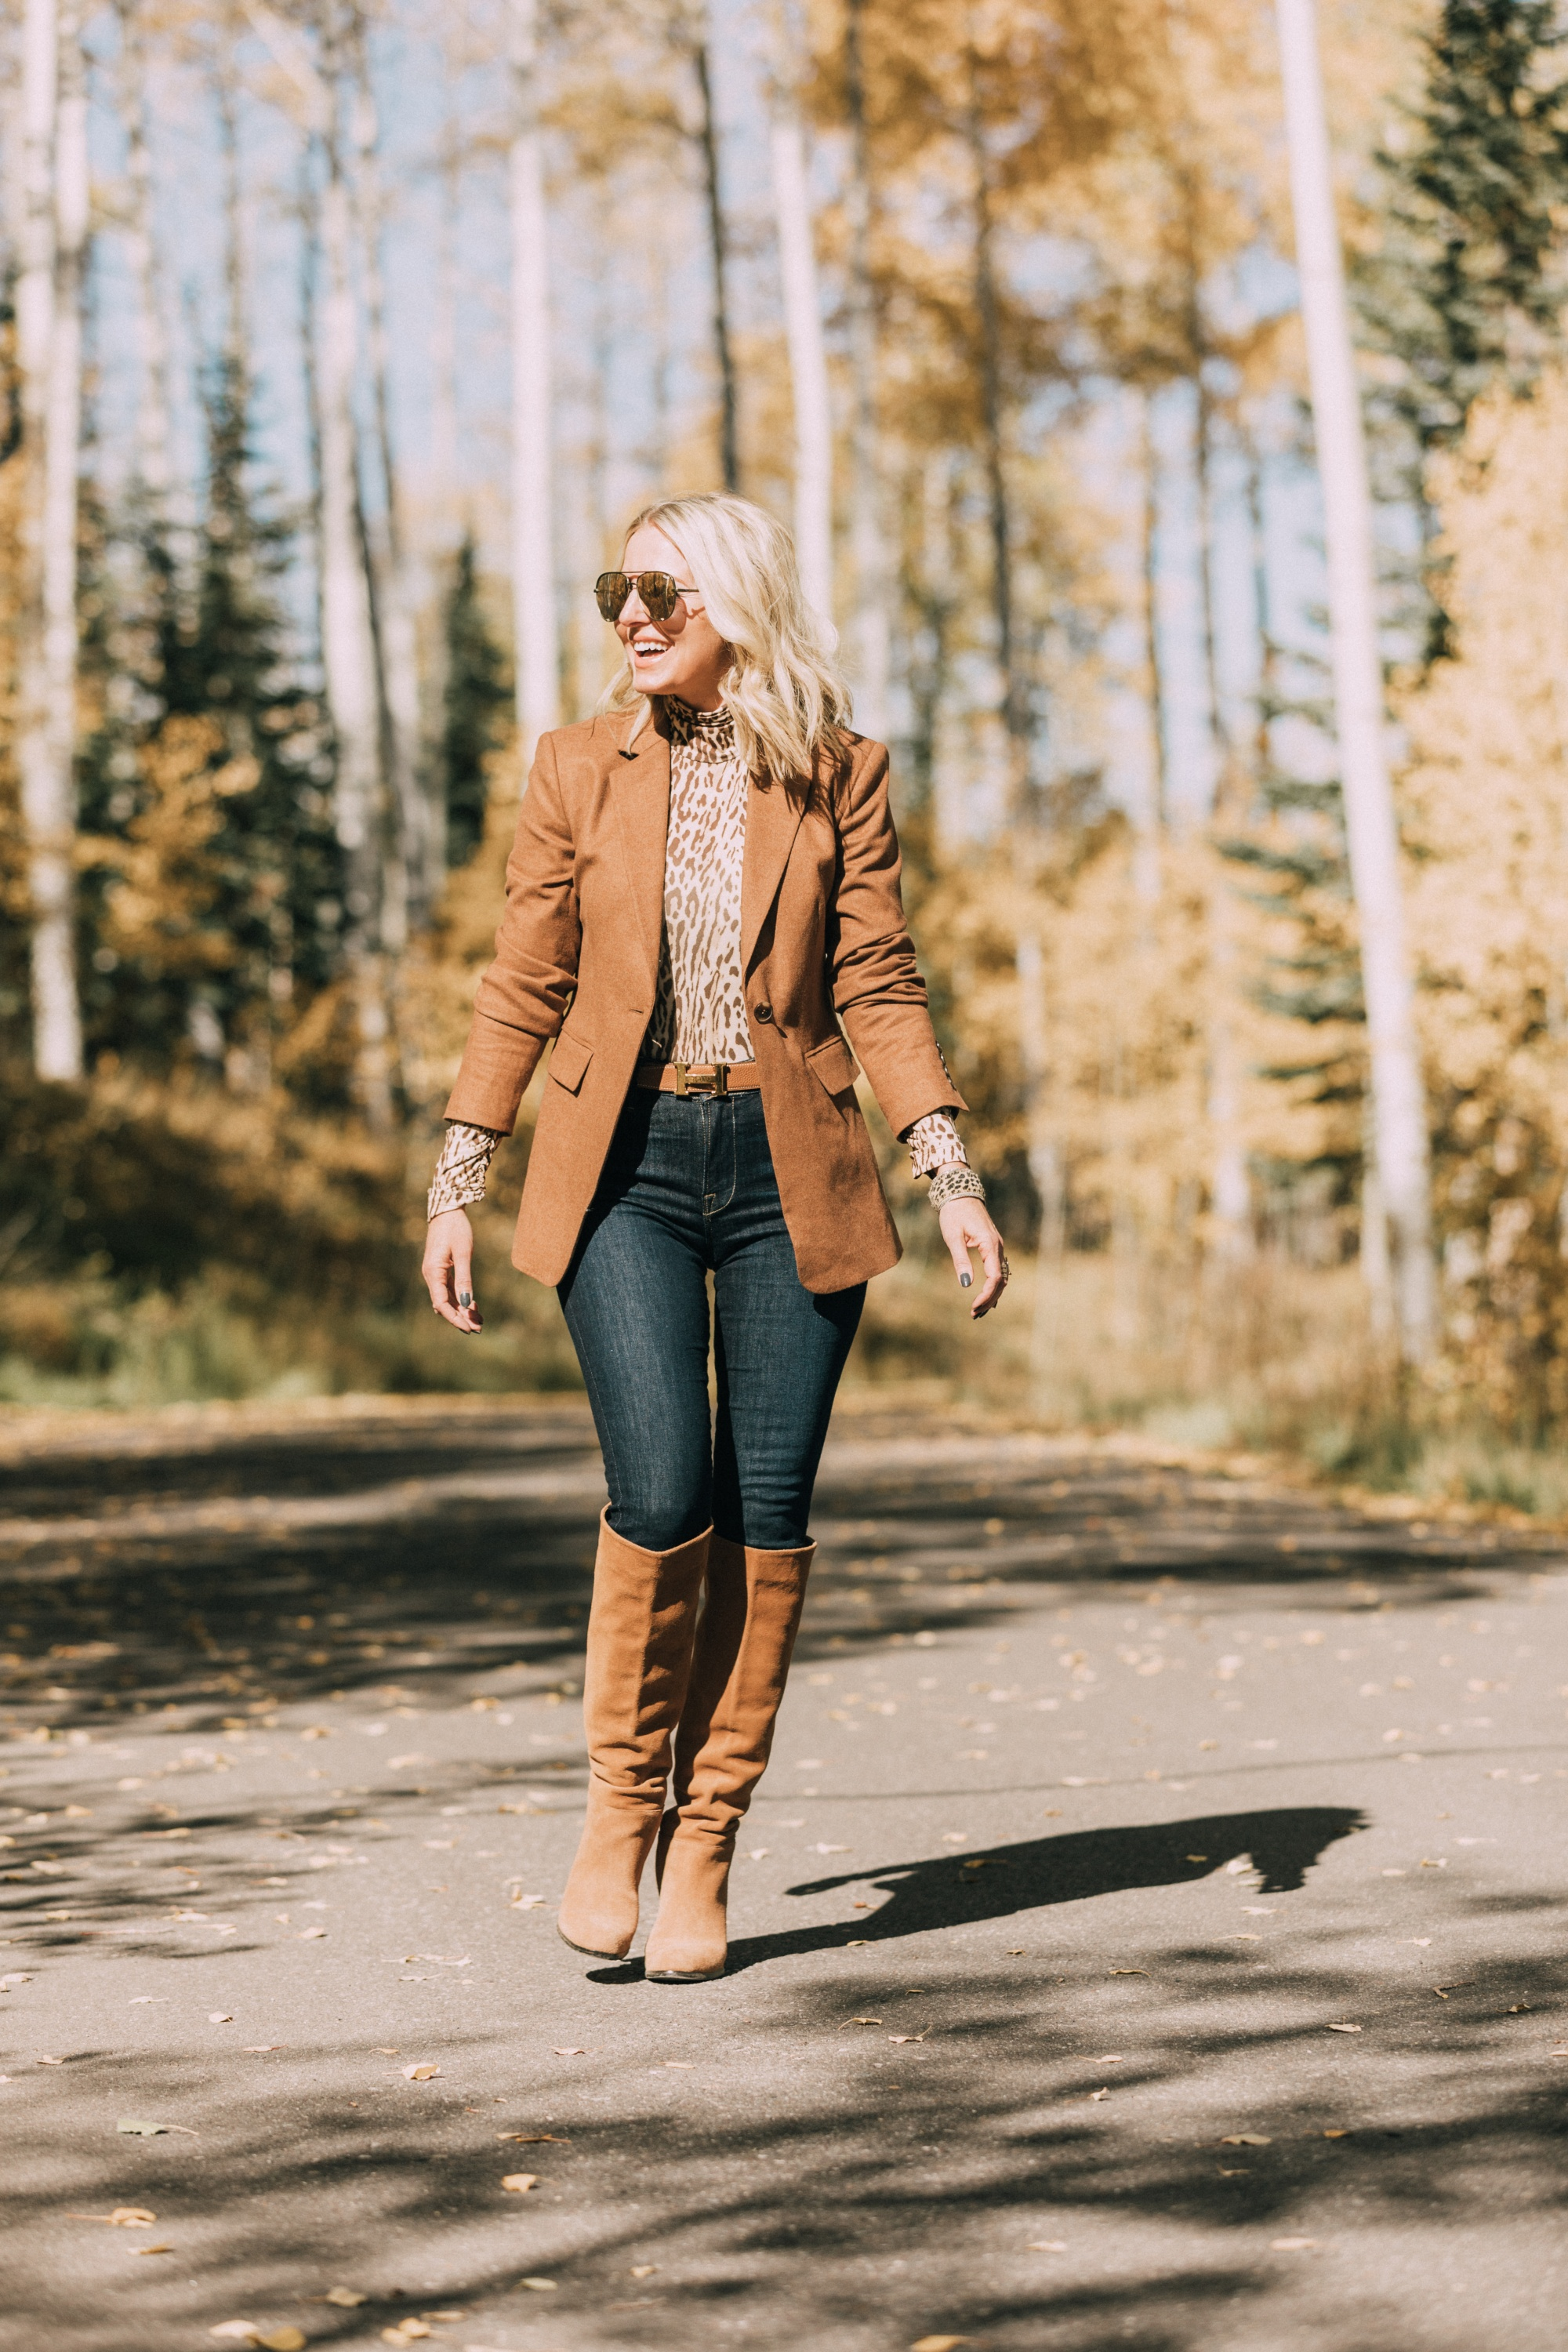 fashion blogger erin busbee wearing cute fall outfit with camel brown blazer over leopard print turtleneck rag & bone skinny jeans paired with sam edelman knee high suede boots, hermes belt